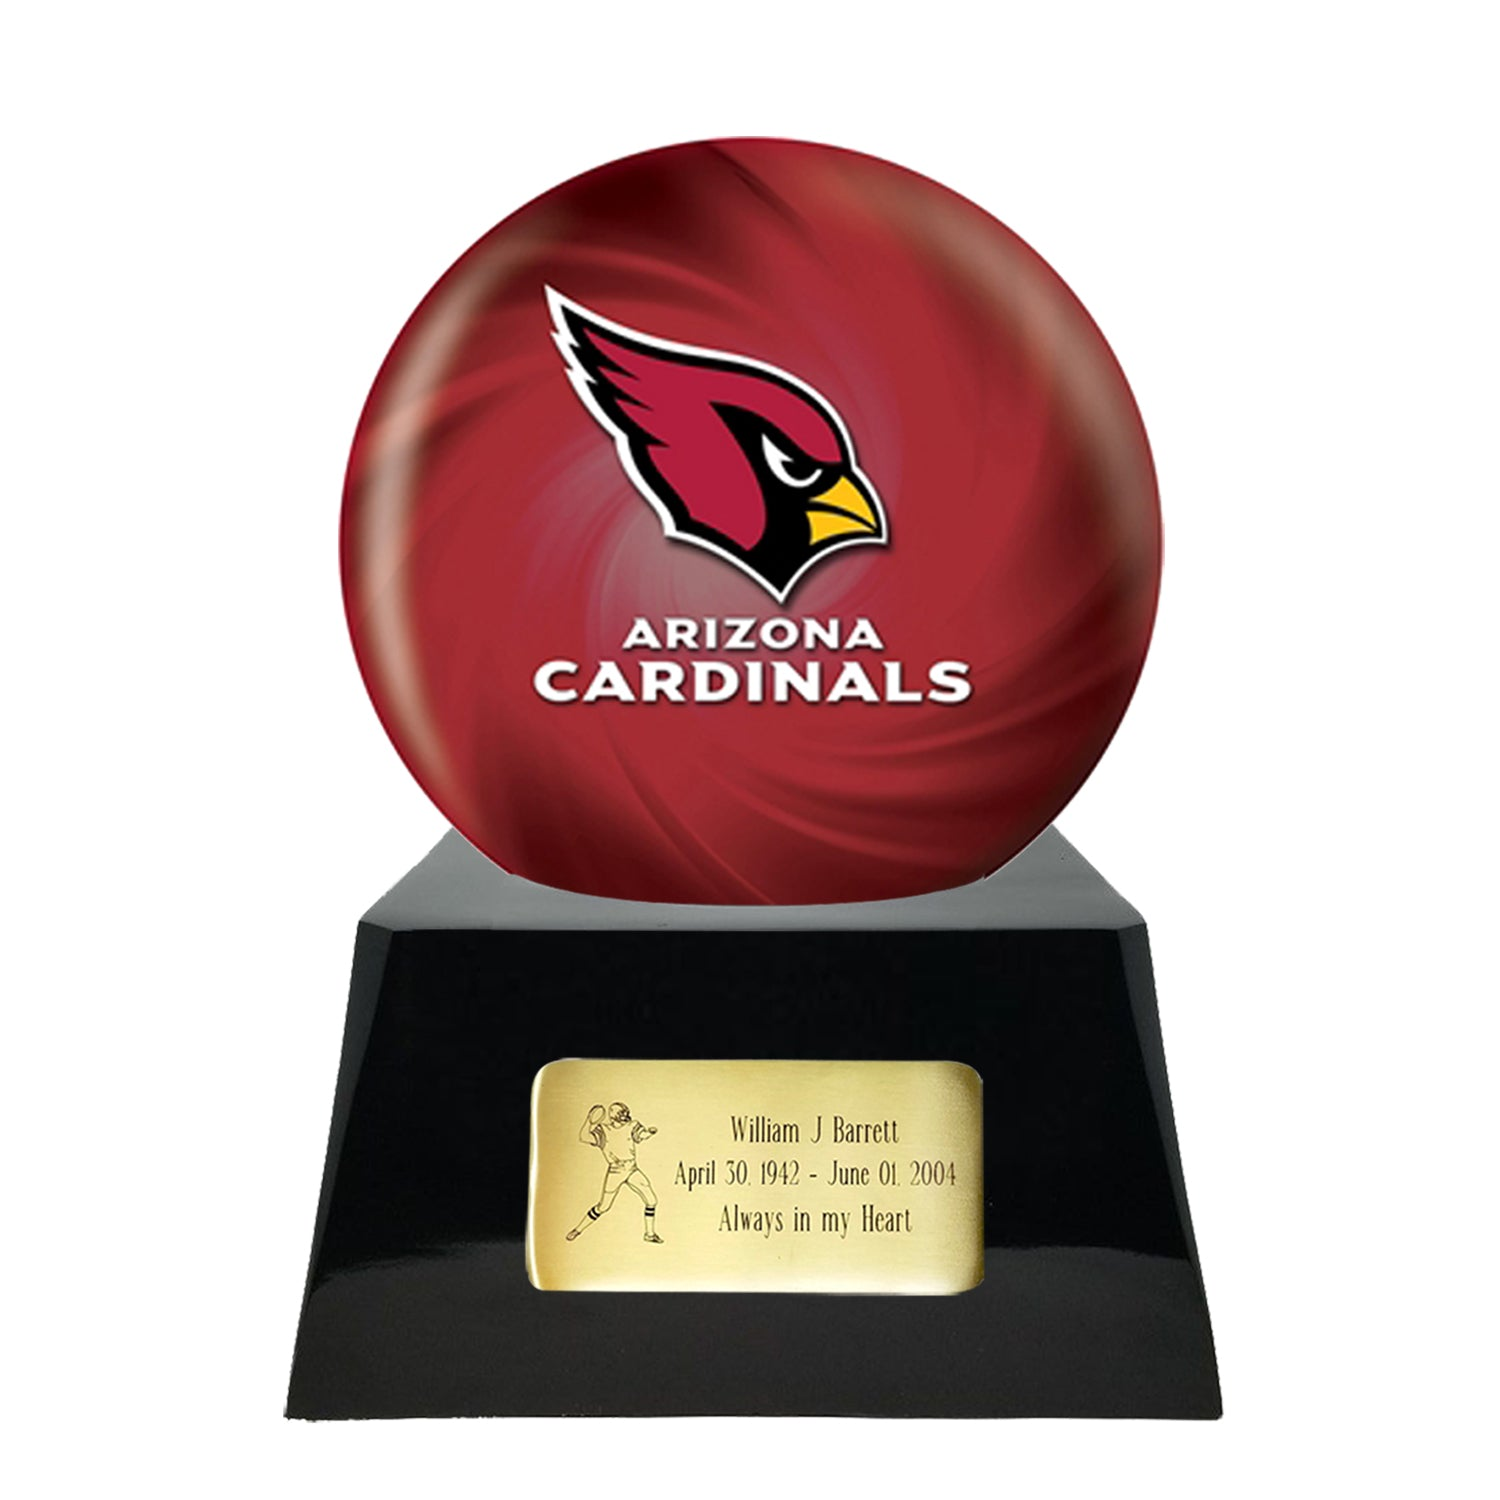 Football Team Urn For Ashes - Football Cremation Urn and Arizona Cardinals Ball Decor with Custom Metal Plaque data-image-id=